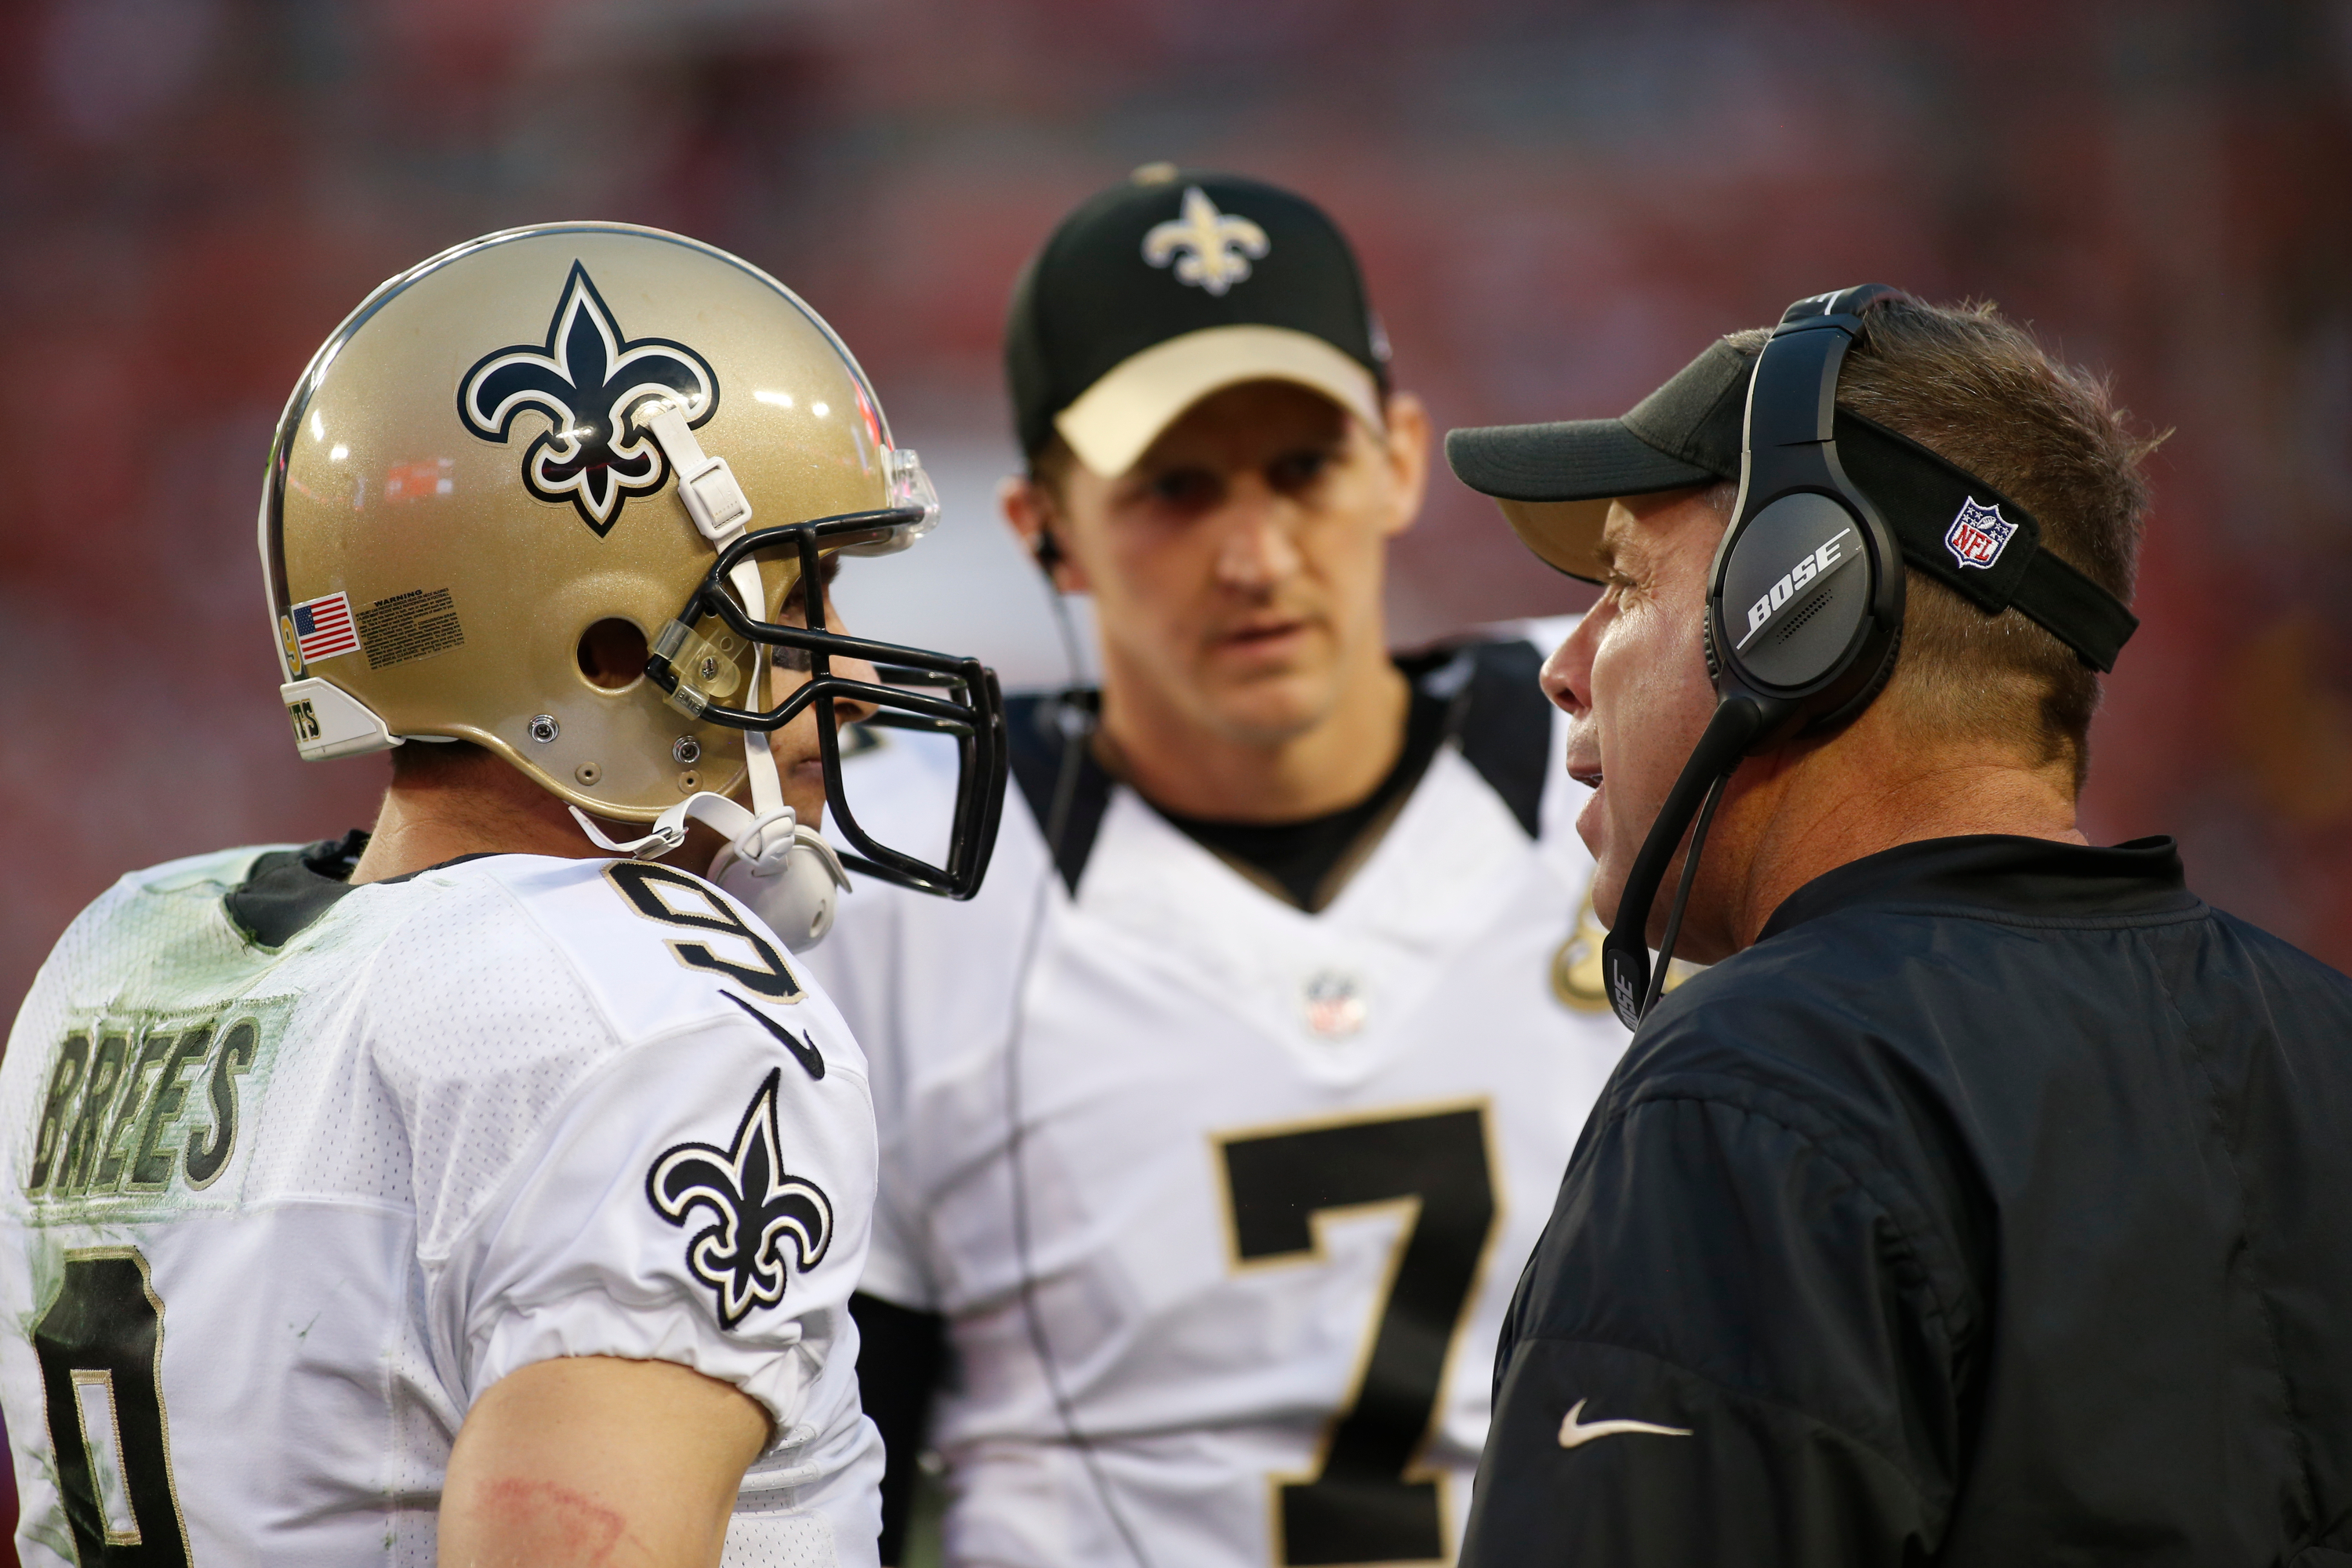 TAMPA, FL - New Orleans Saints head coach Sean Payton speaks with quarterbacks Drew Brees (9) and Luke McCown (7) during a game against the Tampa Bay Buccaneers at Raymond James Stadium.